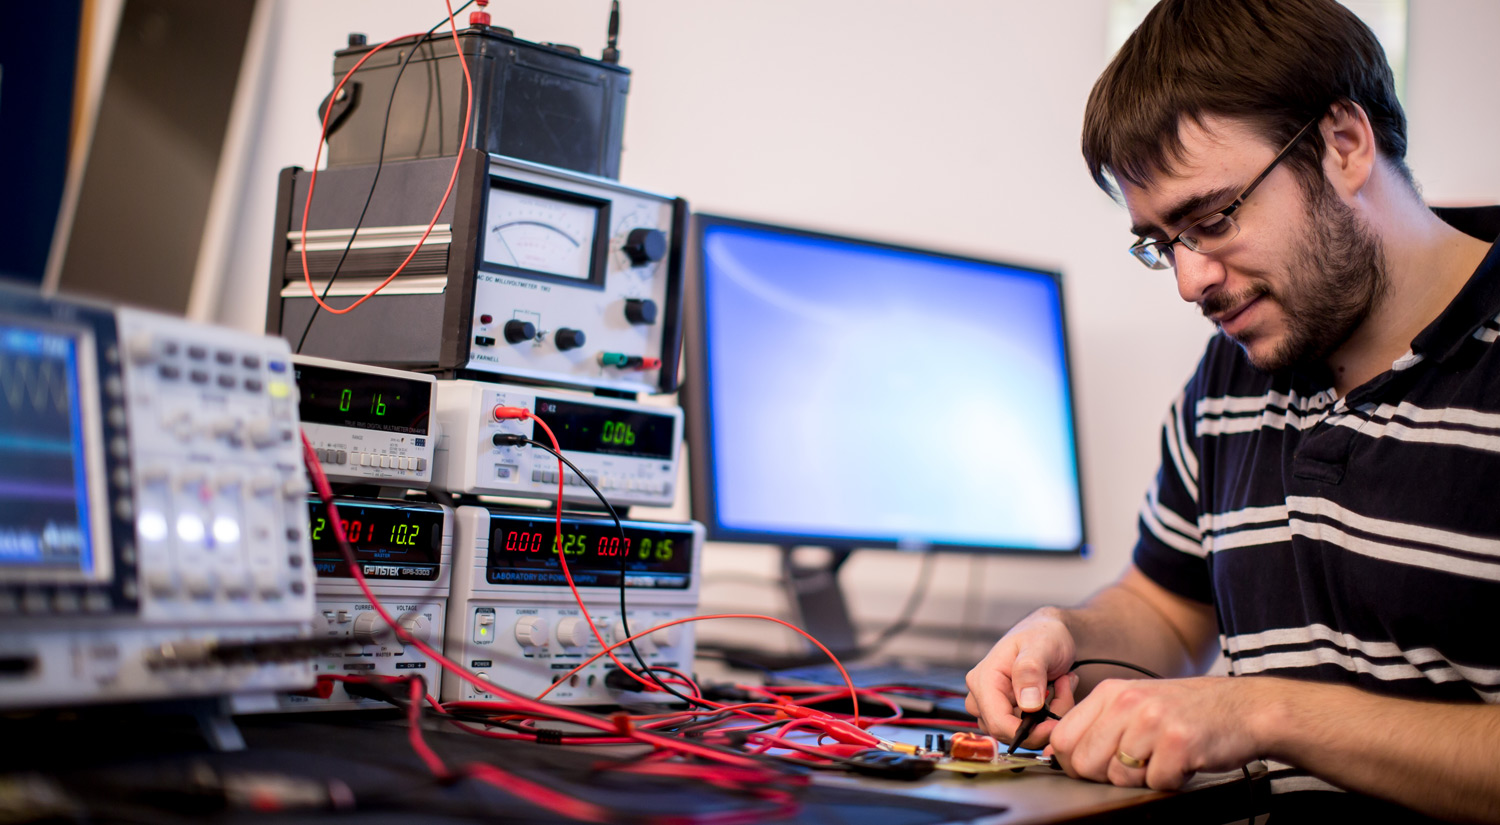 A student in an electronic labs working with equipment